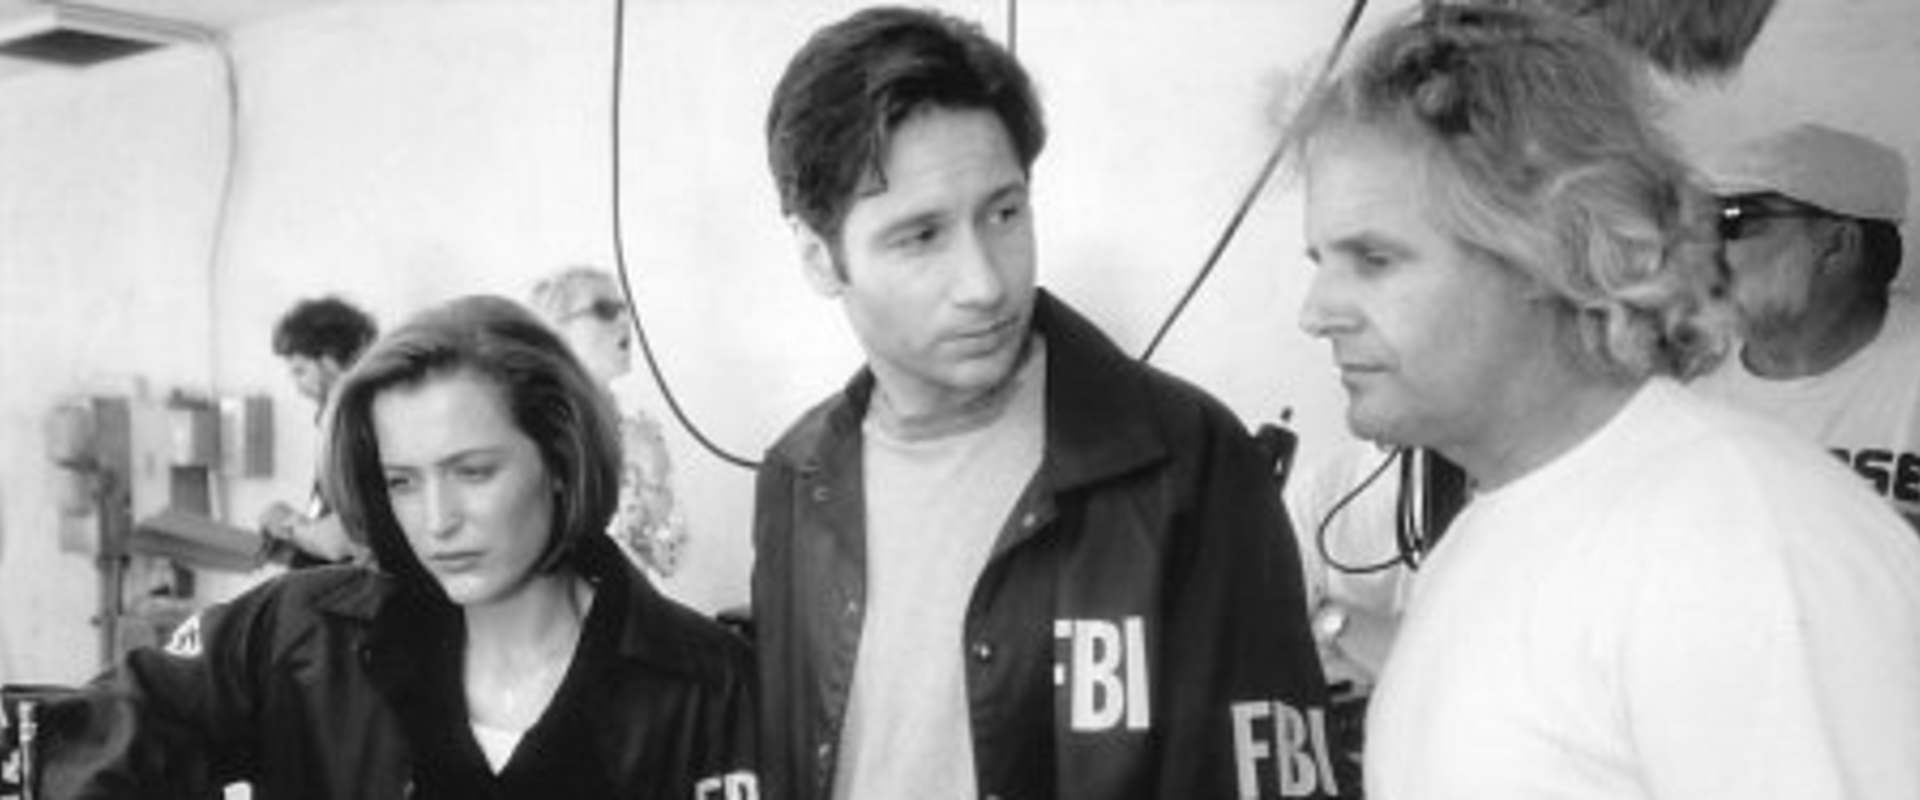 The Making of 'The X Files: Fight the Future' background 2